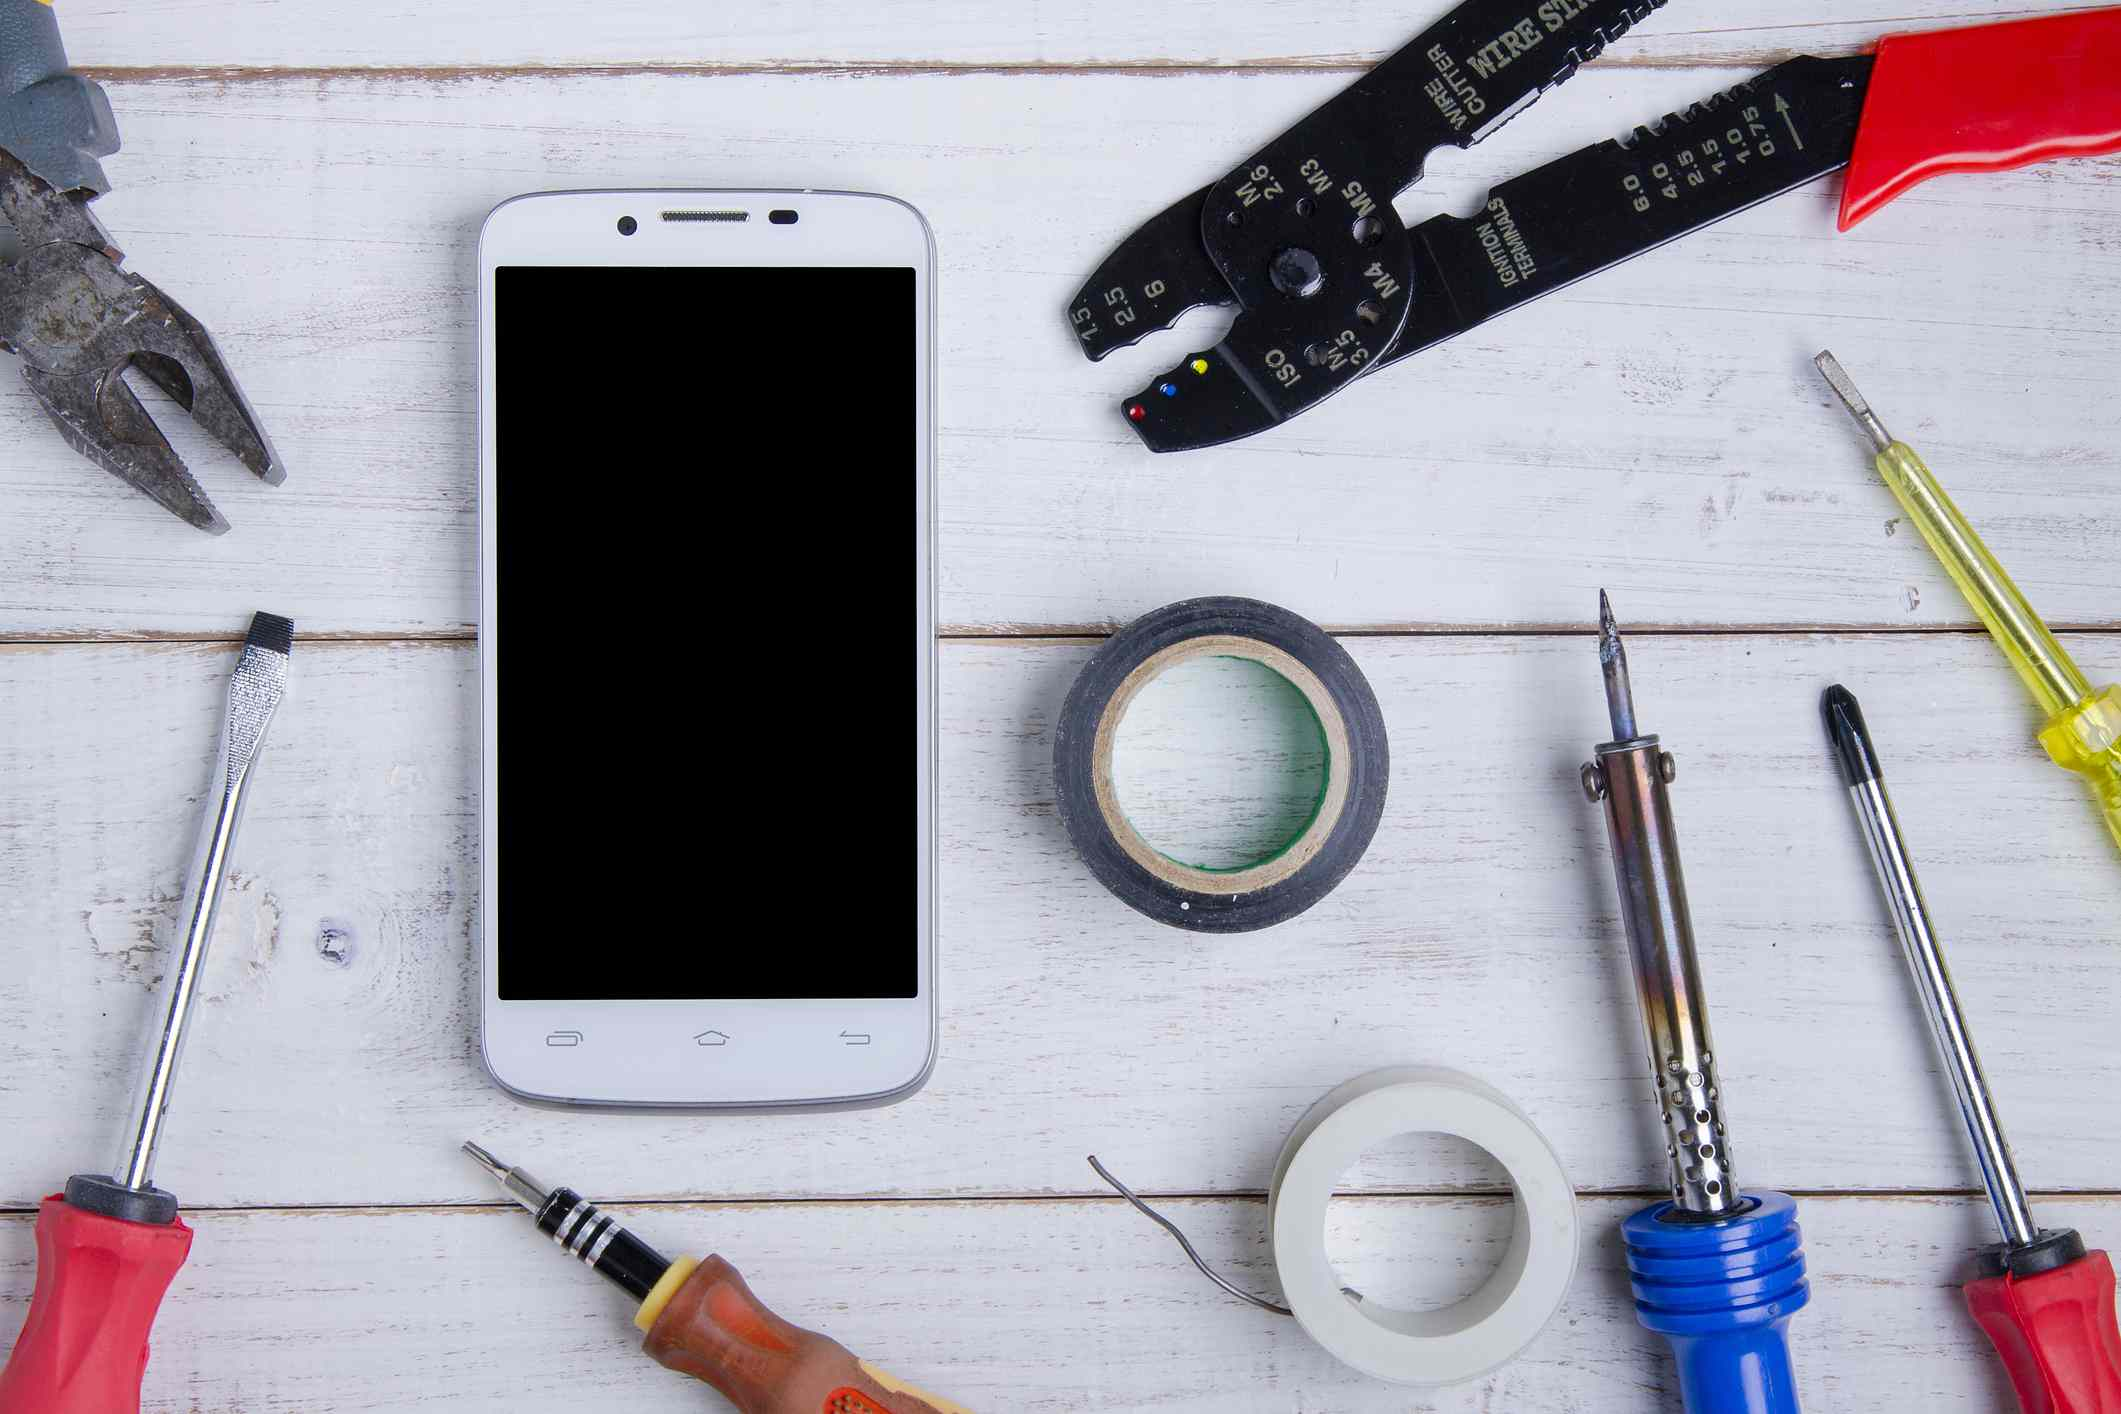 Top down view of a smartphone surrounded by the tools used to fix broken phones.